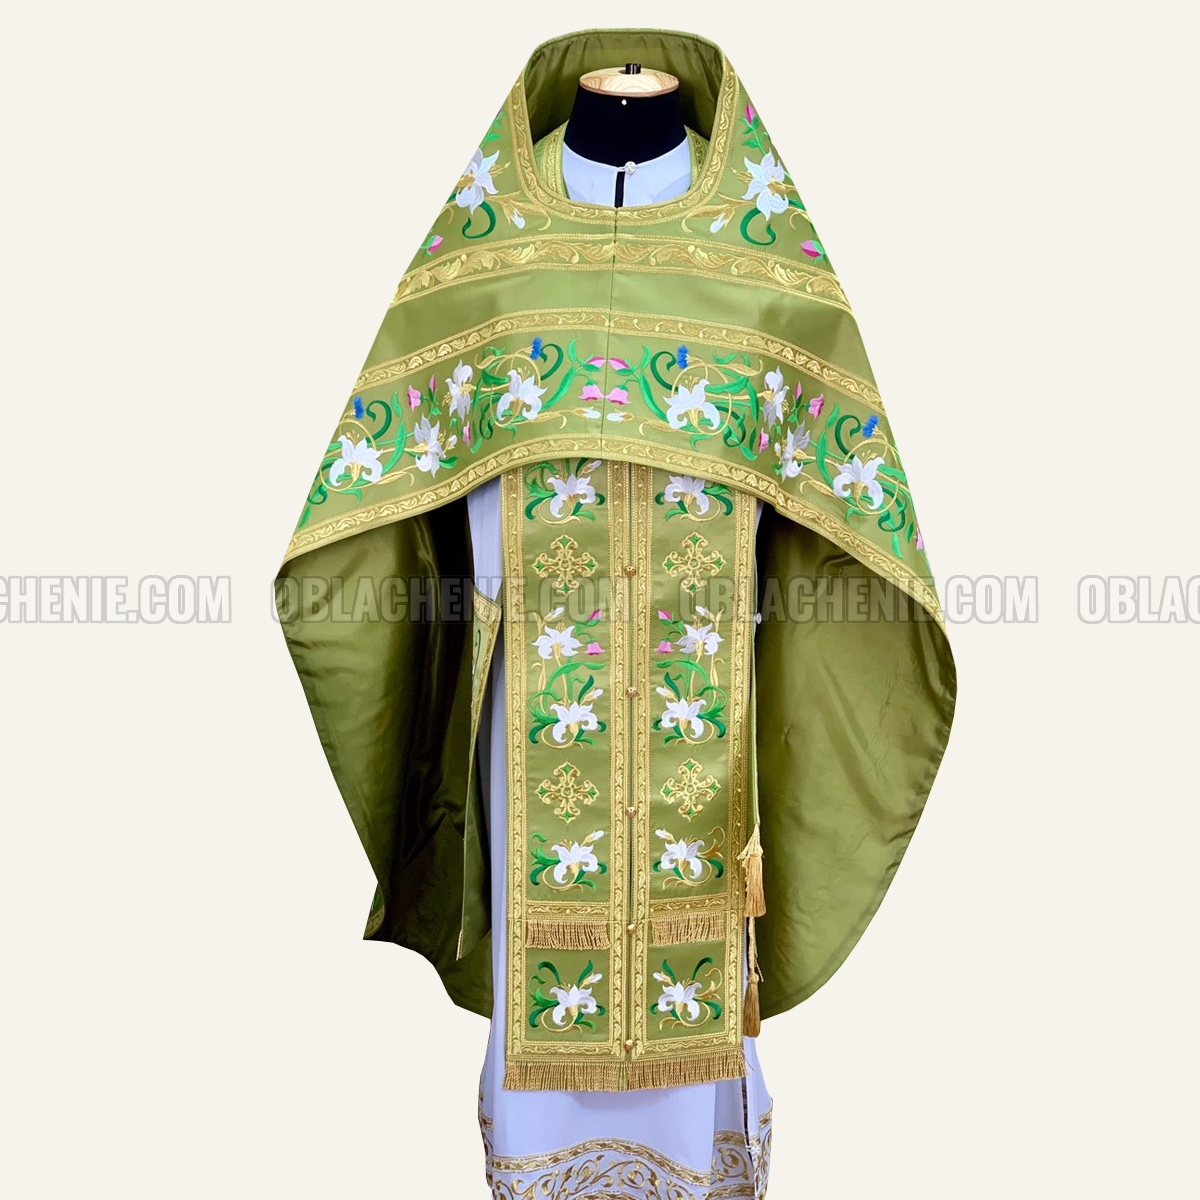 Embroidered priest's vestments 10652